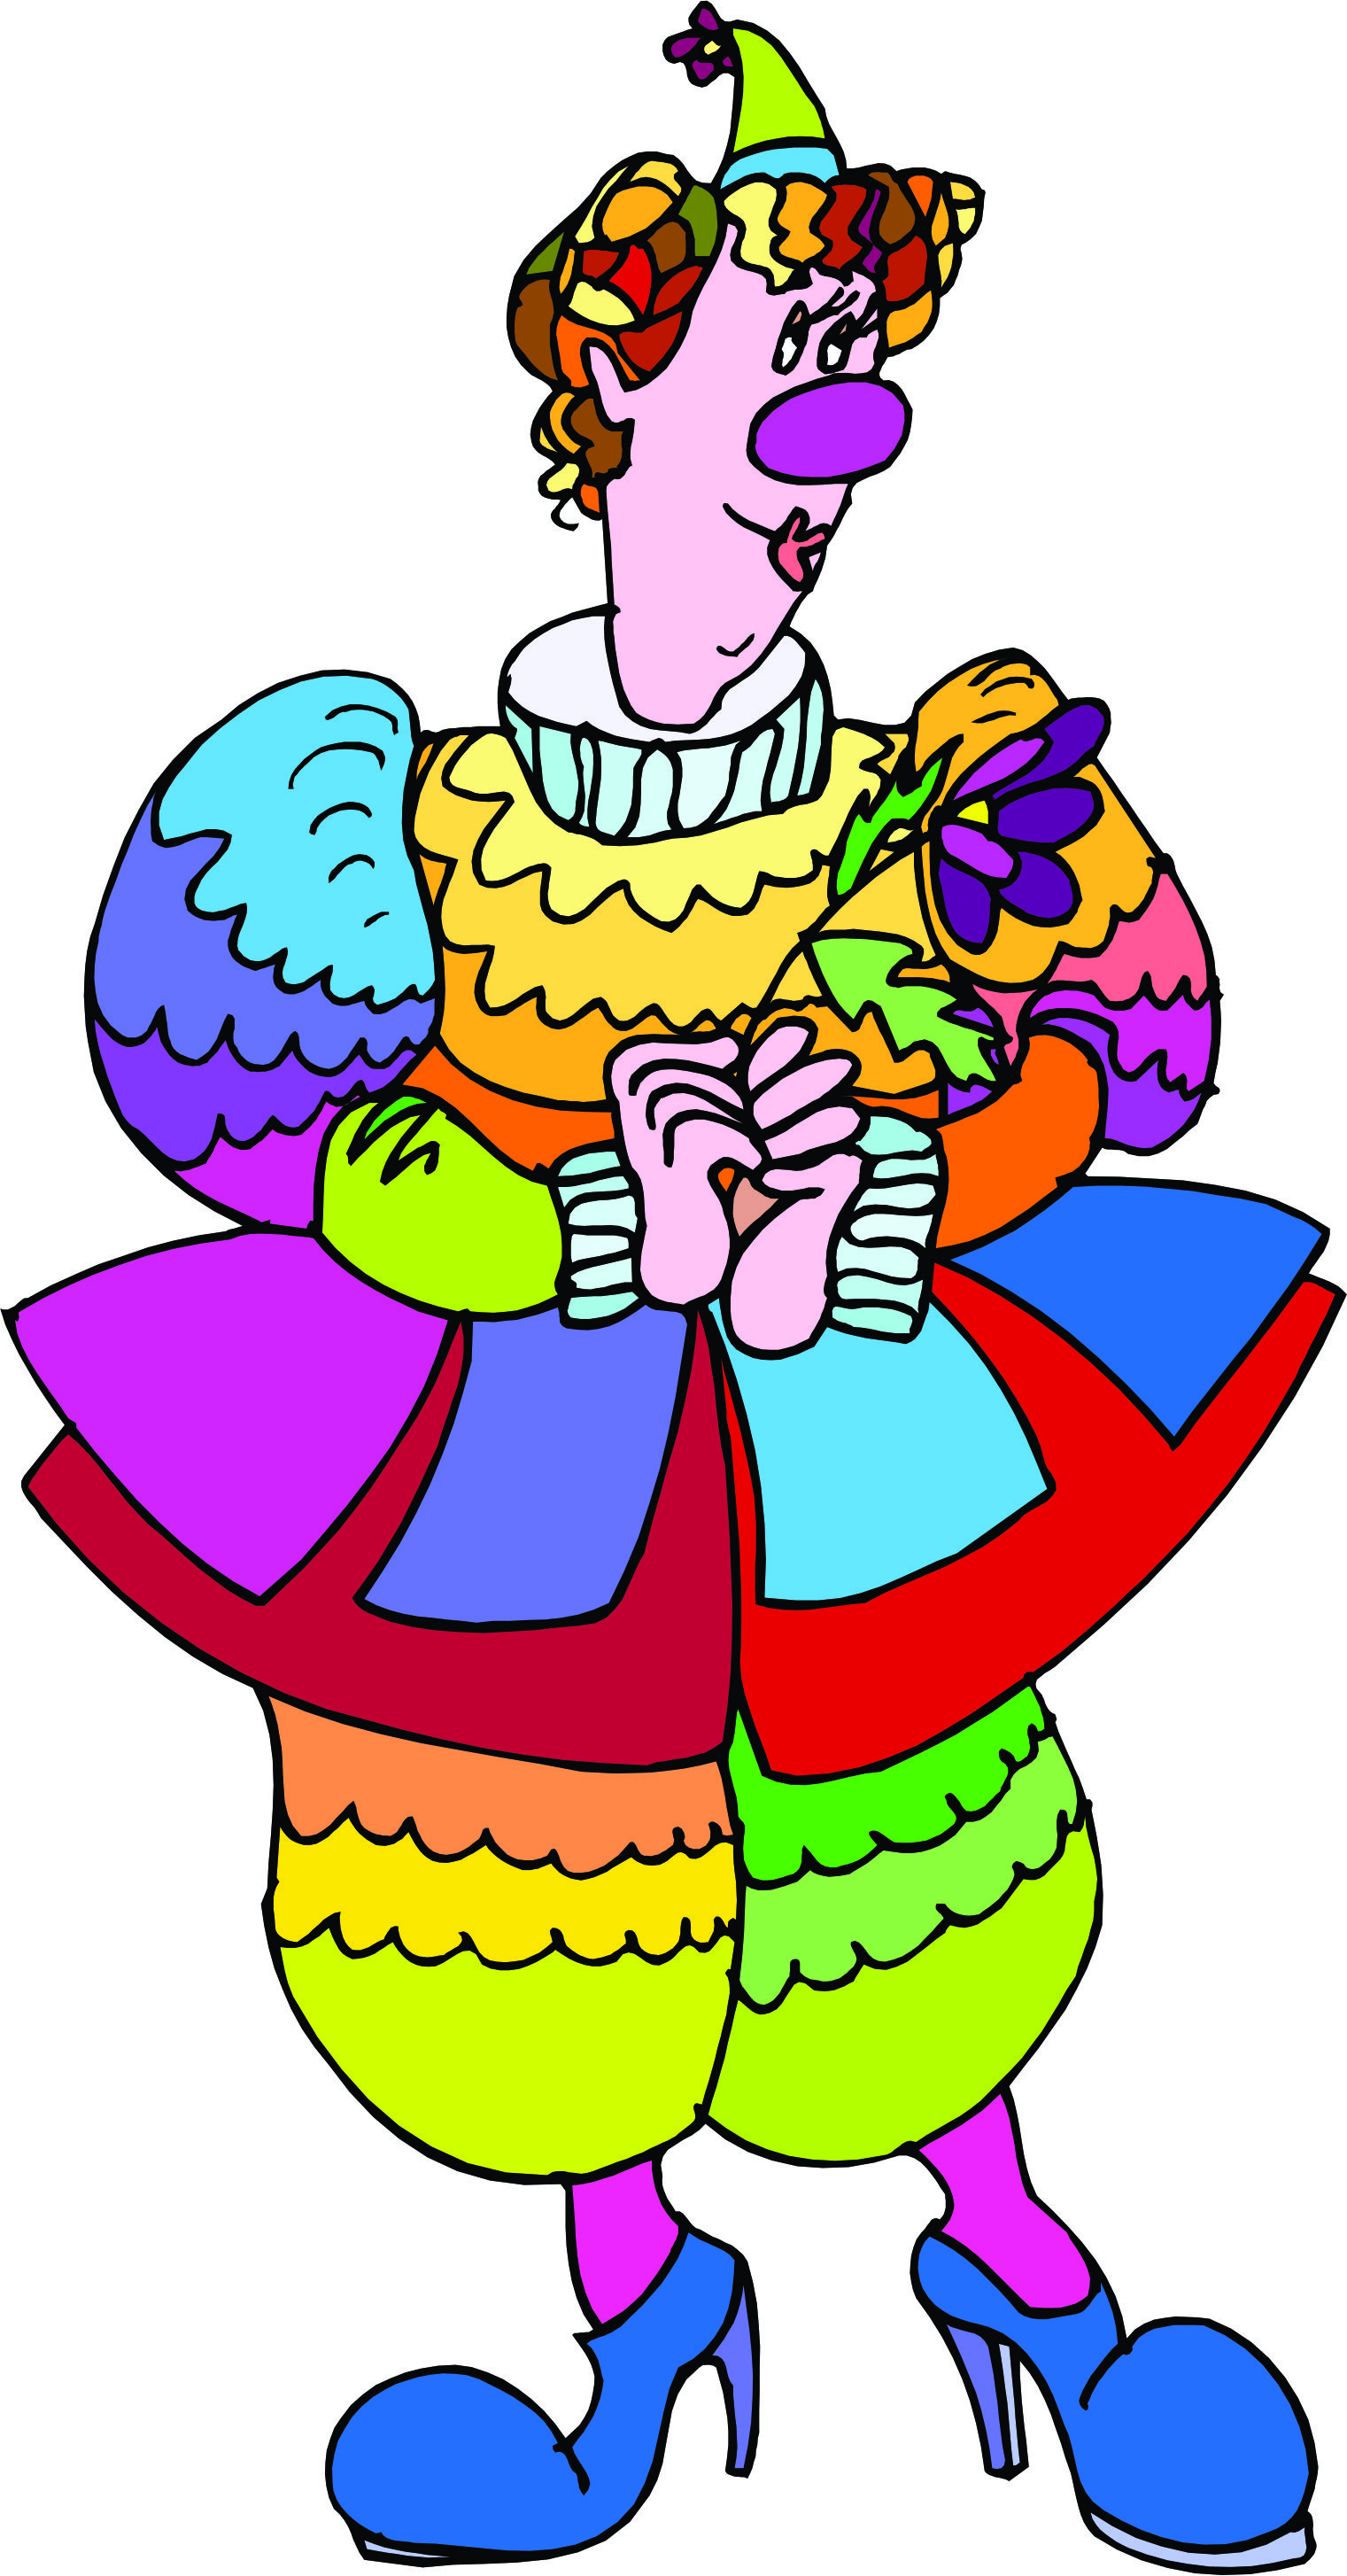 Free lady cliparts download. Clown clipart woman